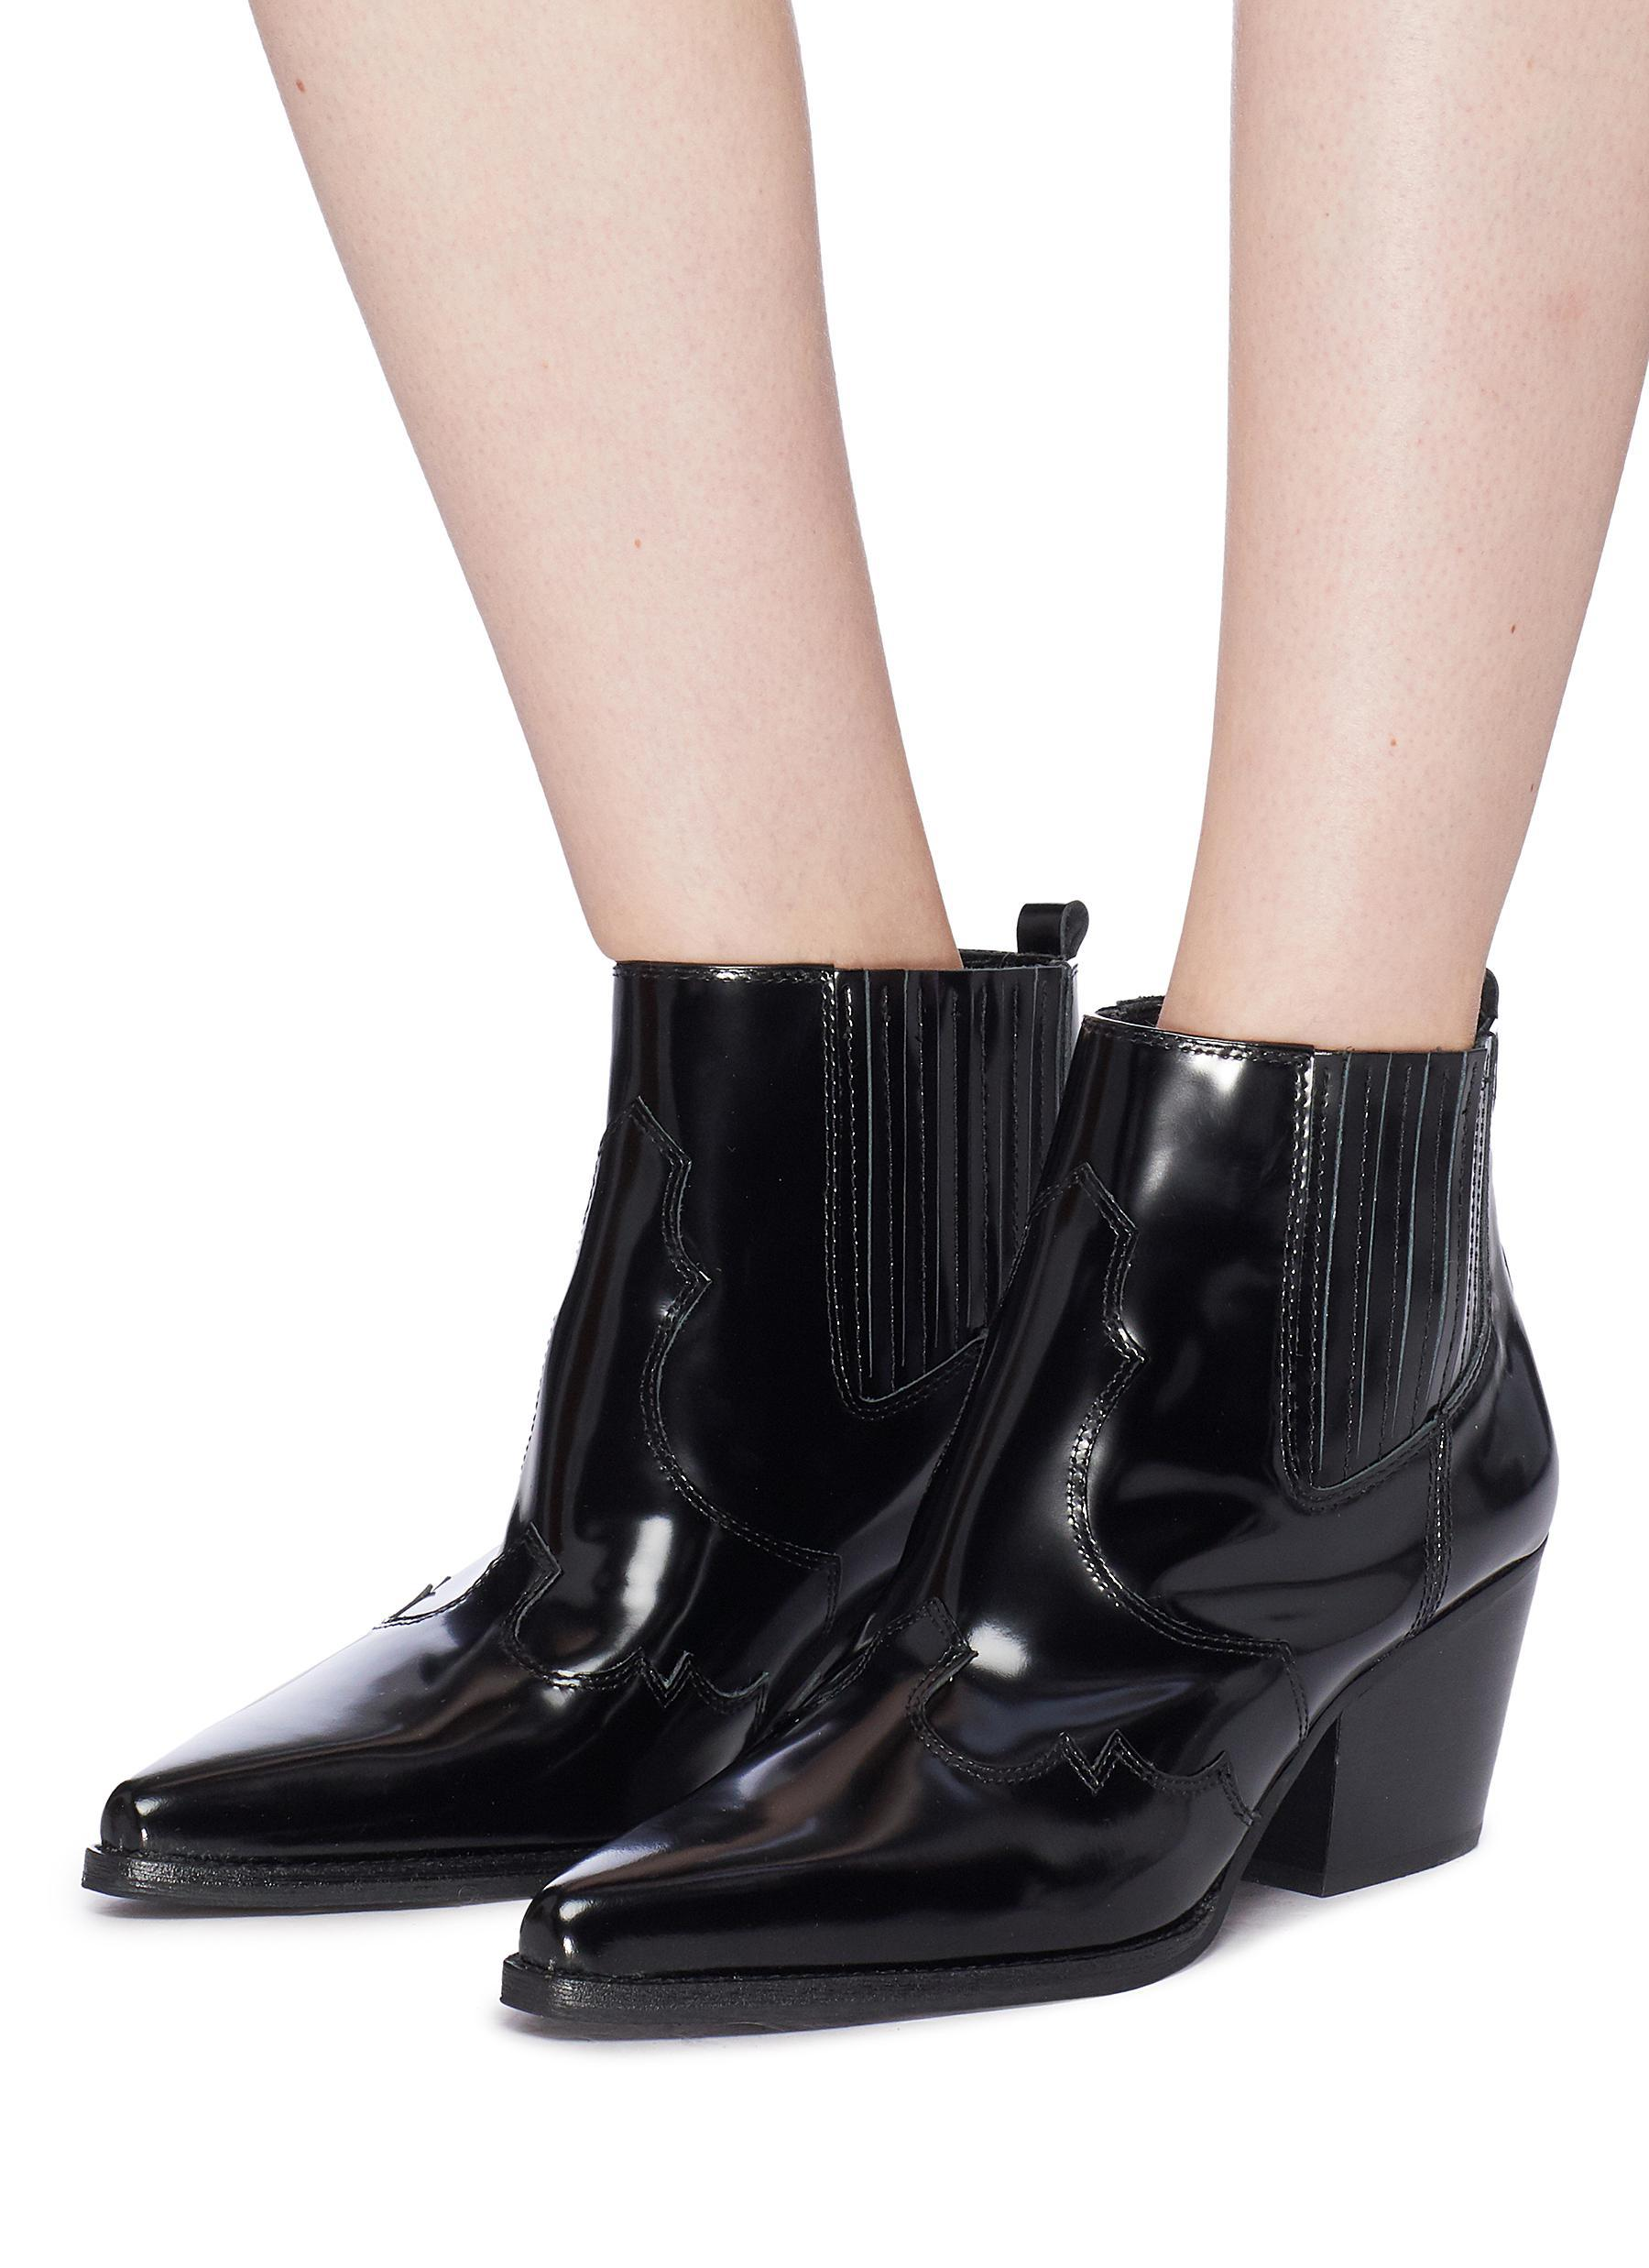 6bd73a643 Sam Edelman 'winona' Patent Leather Panelled Ankle Boots in Black - Lyst